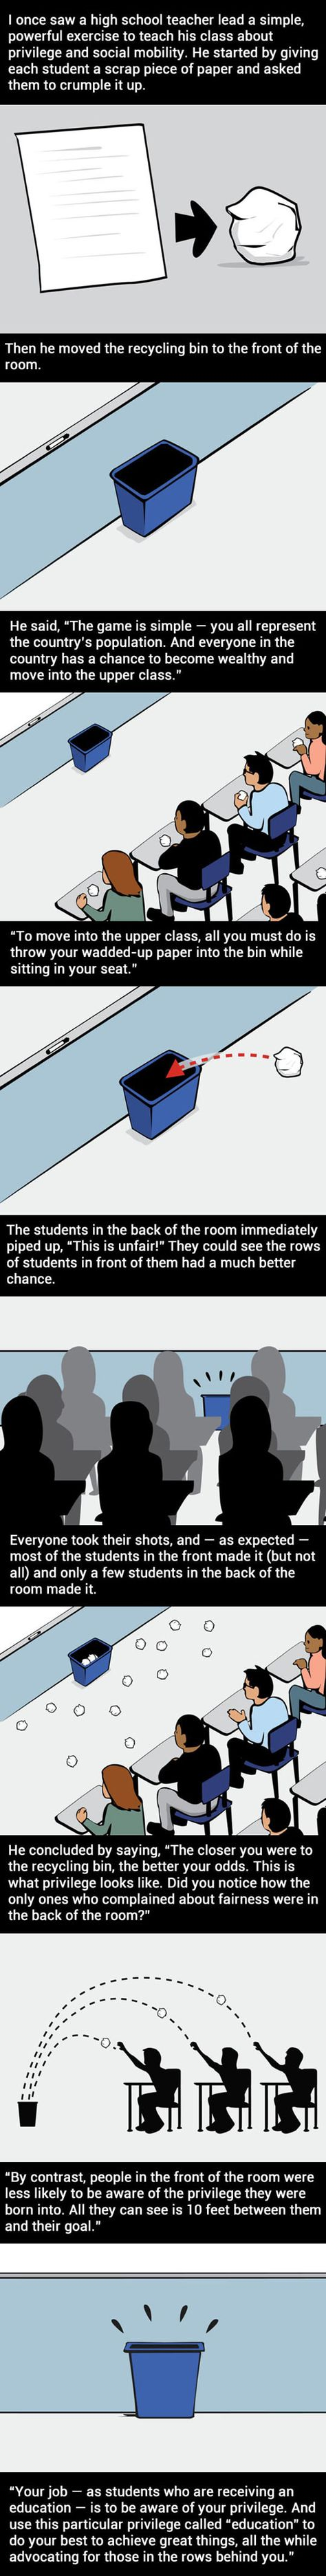 Jessica Benjamin- This Teacher Taught His Class A Powerful Lesson About Privilege. I think this is a great lesson for older grades but maybe you could use it in middle schools as well. I think its a powerful lesson that would really impact students. Tricky Games, Faith In Humanity Restored, 9gag Funny, School Counseling, Future Classroom, Social Work, Social Class, Social Issues, Classroom Management